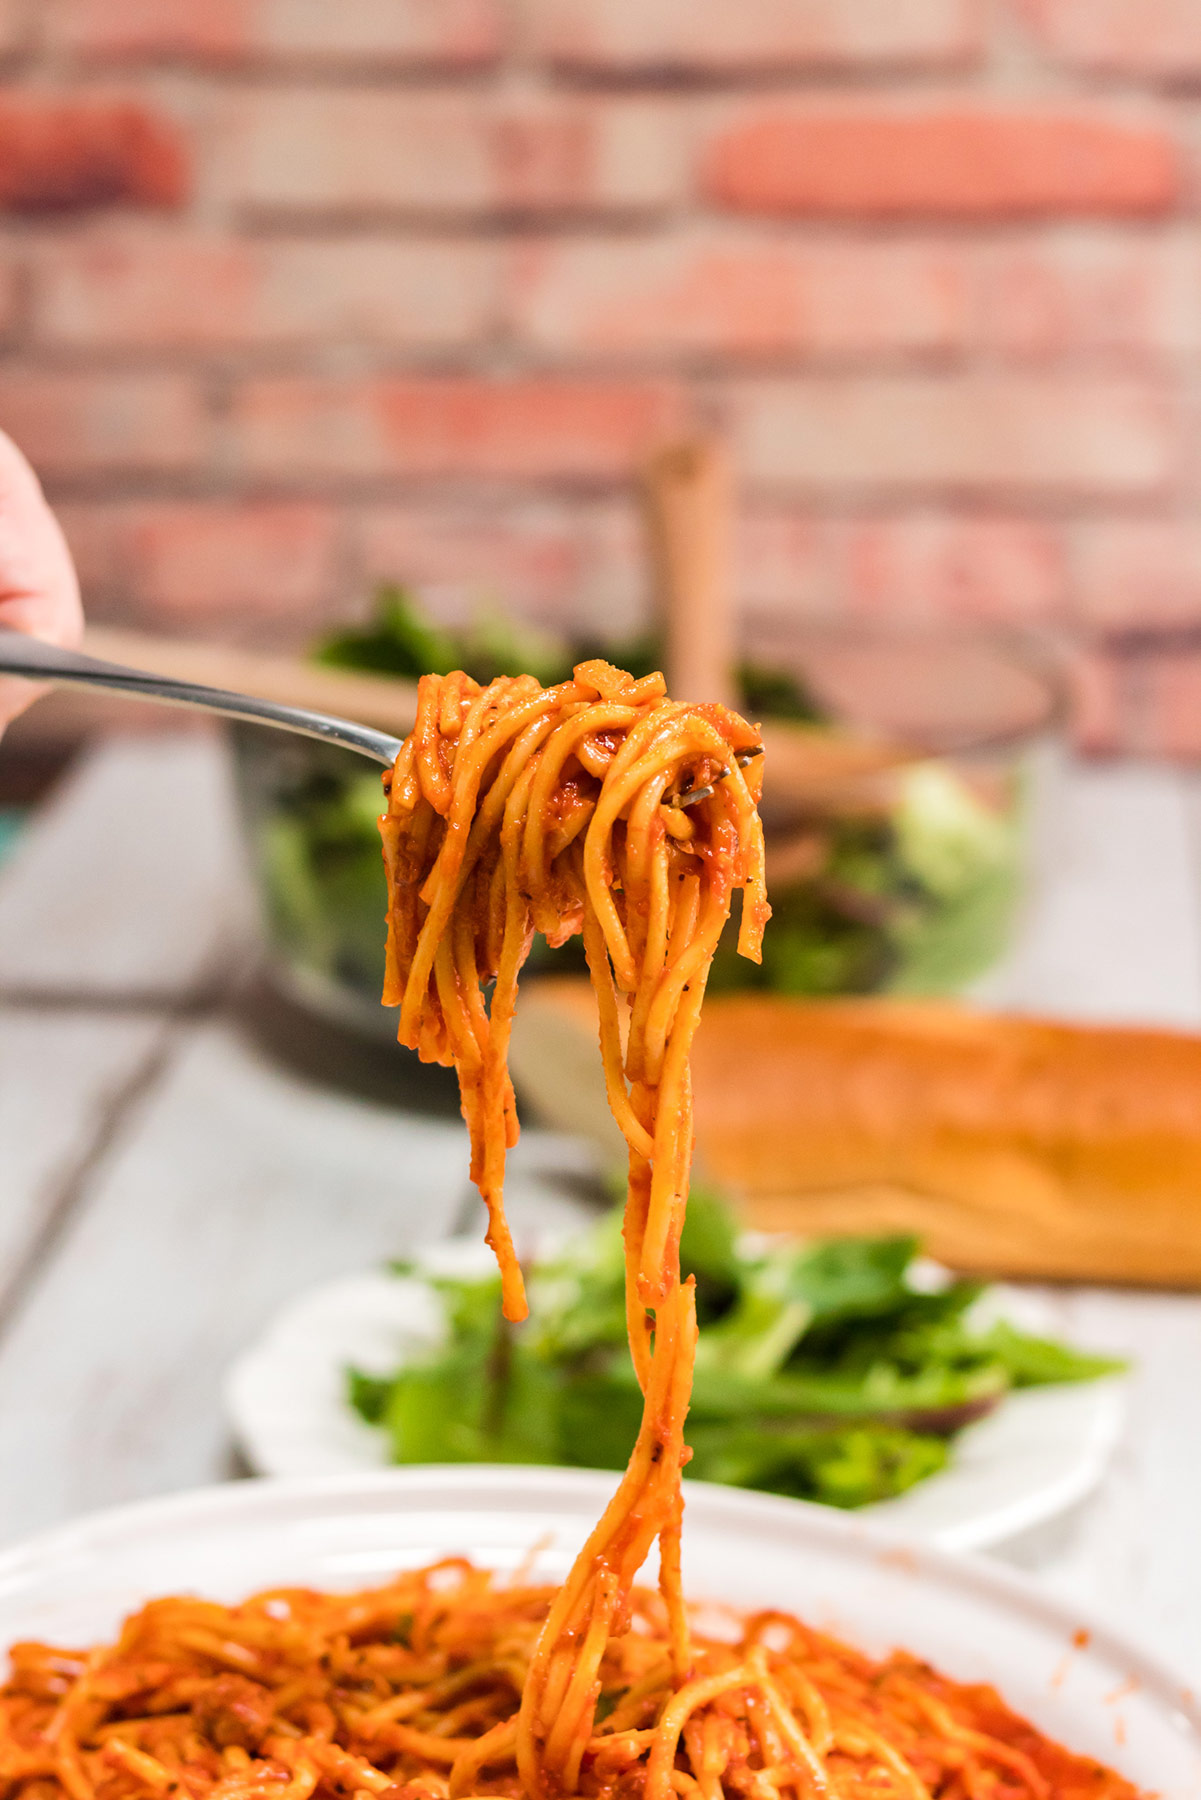 a fork lifting spaghetti from a bowl. Fresh herbs and a red bricked wall in the background.